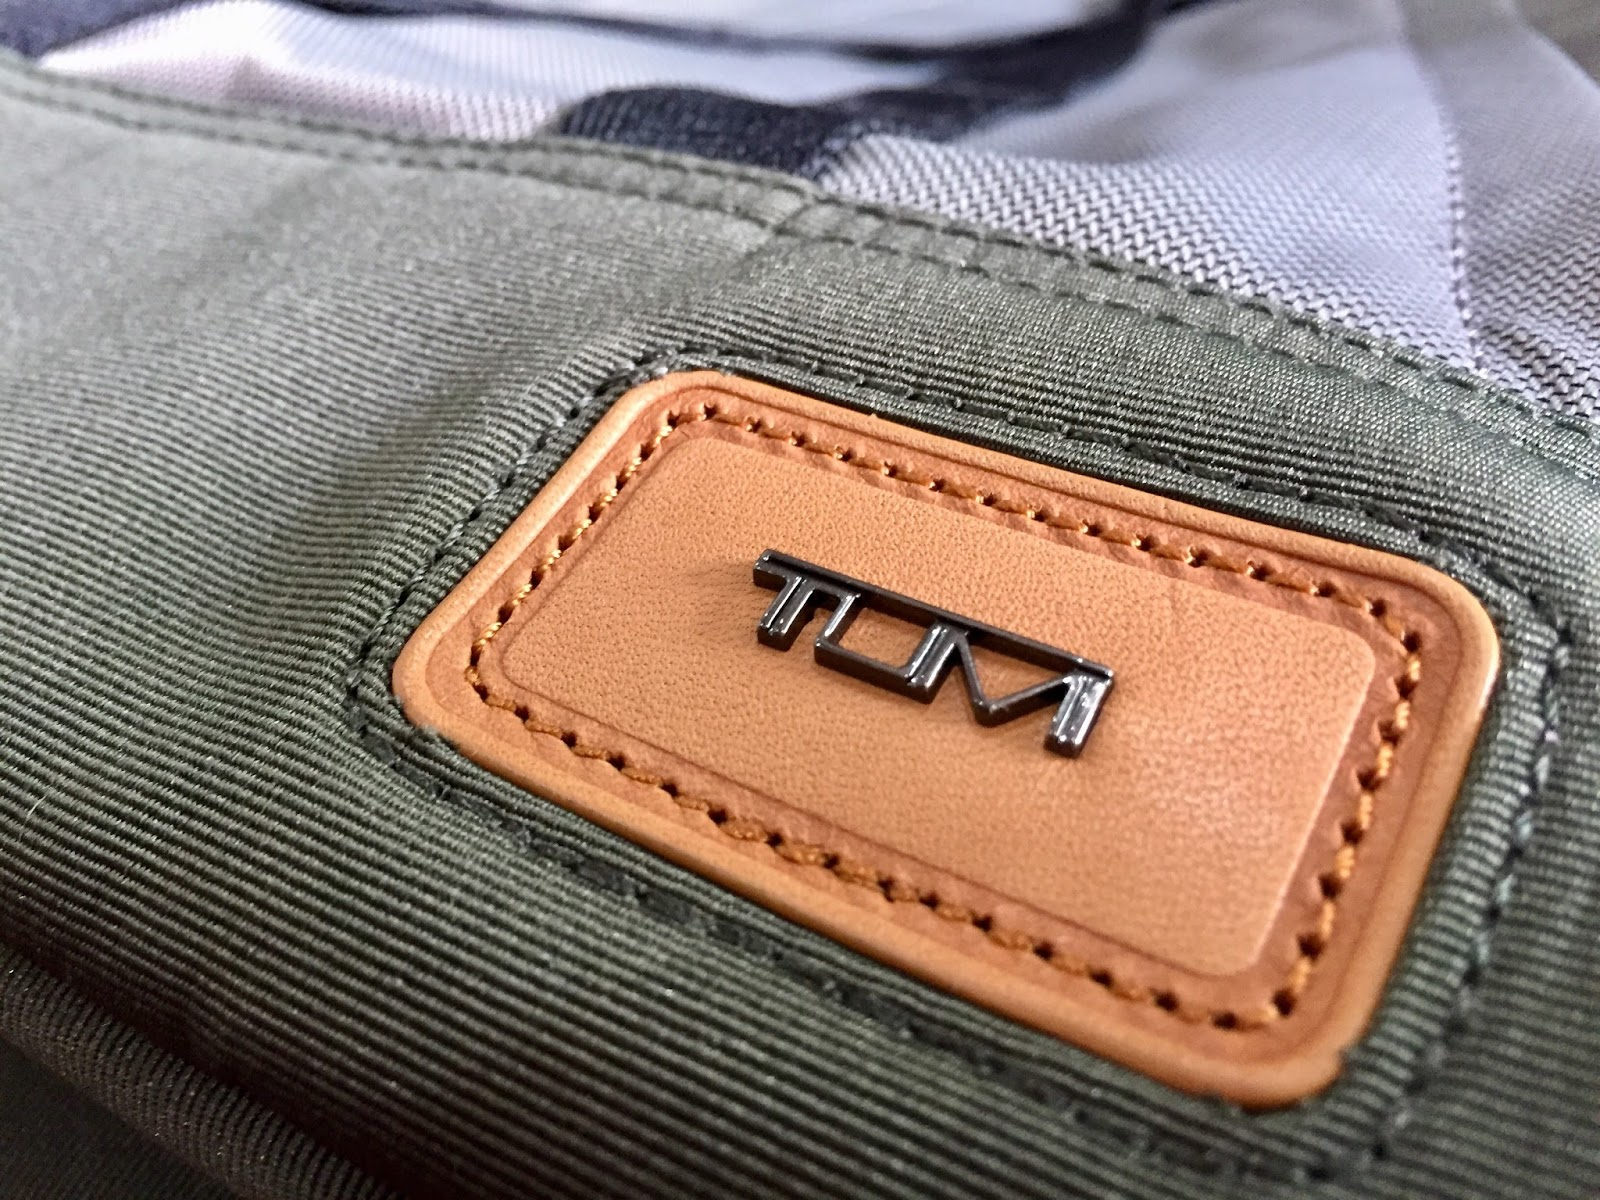 Tumi Cameron Commuter Review Hanger 2 On The